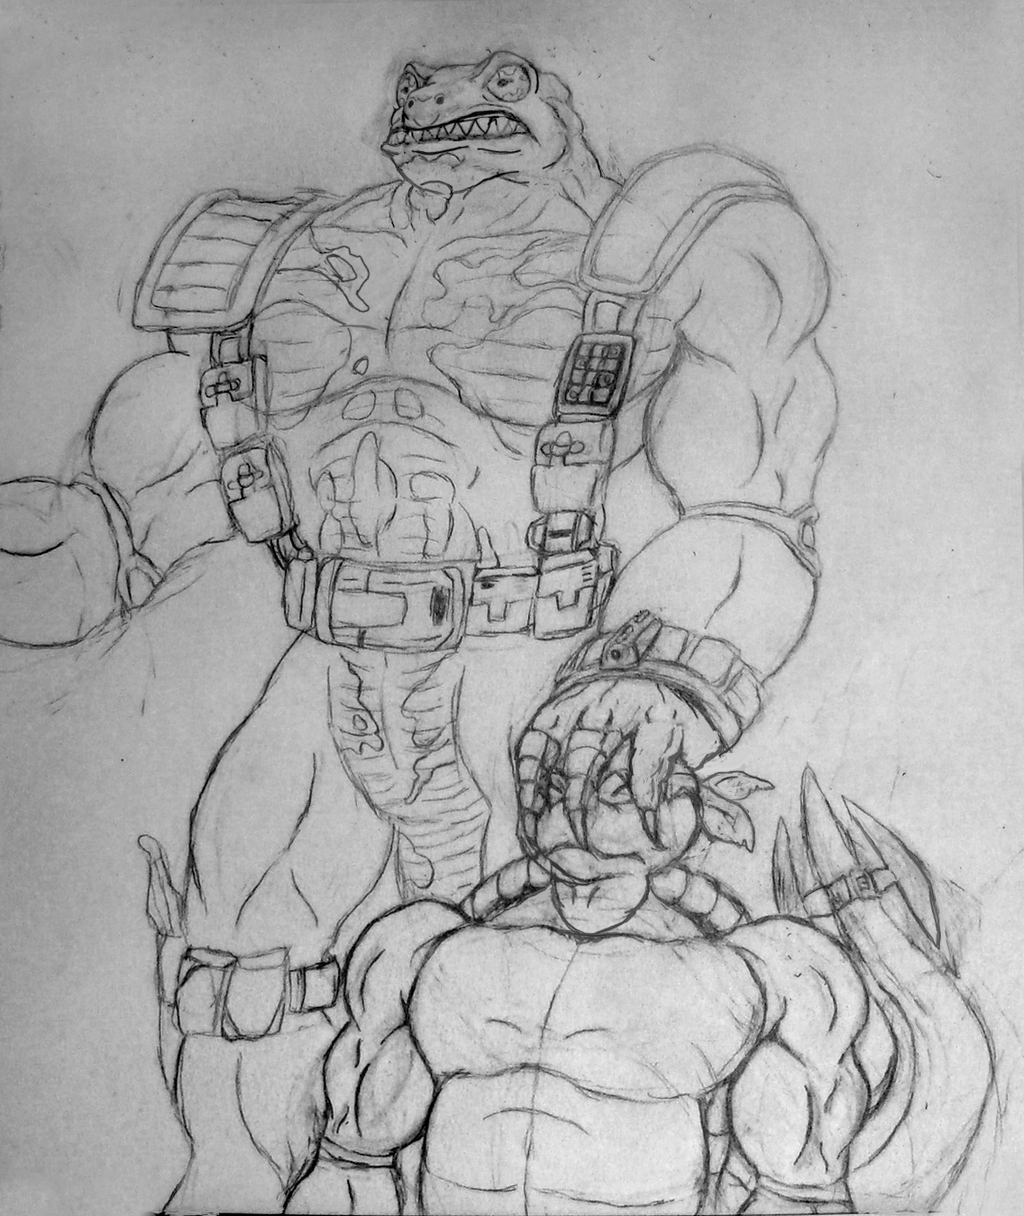 Pencil sketch: Muscle Newtralizer from Ninja Turtles